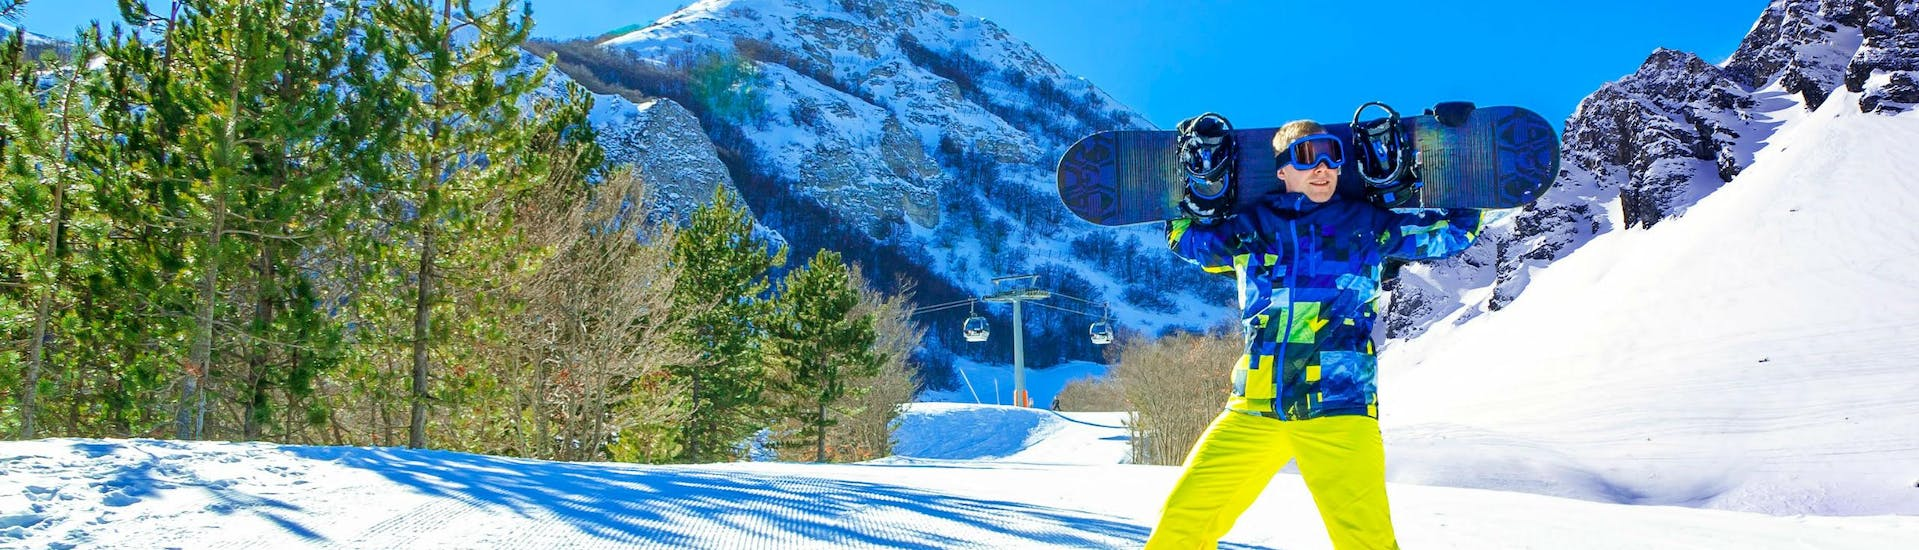 A snowboarder is posing for the camera on a sunny ski slope in the Italian ski resort of Ovindoli, where visitors can choose from a wide range of ski lessons offered by the local ski schools.